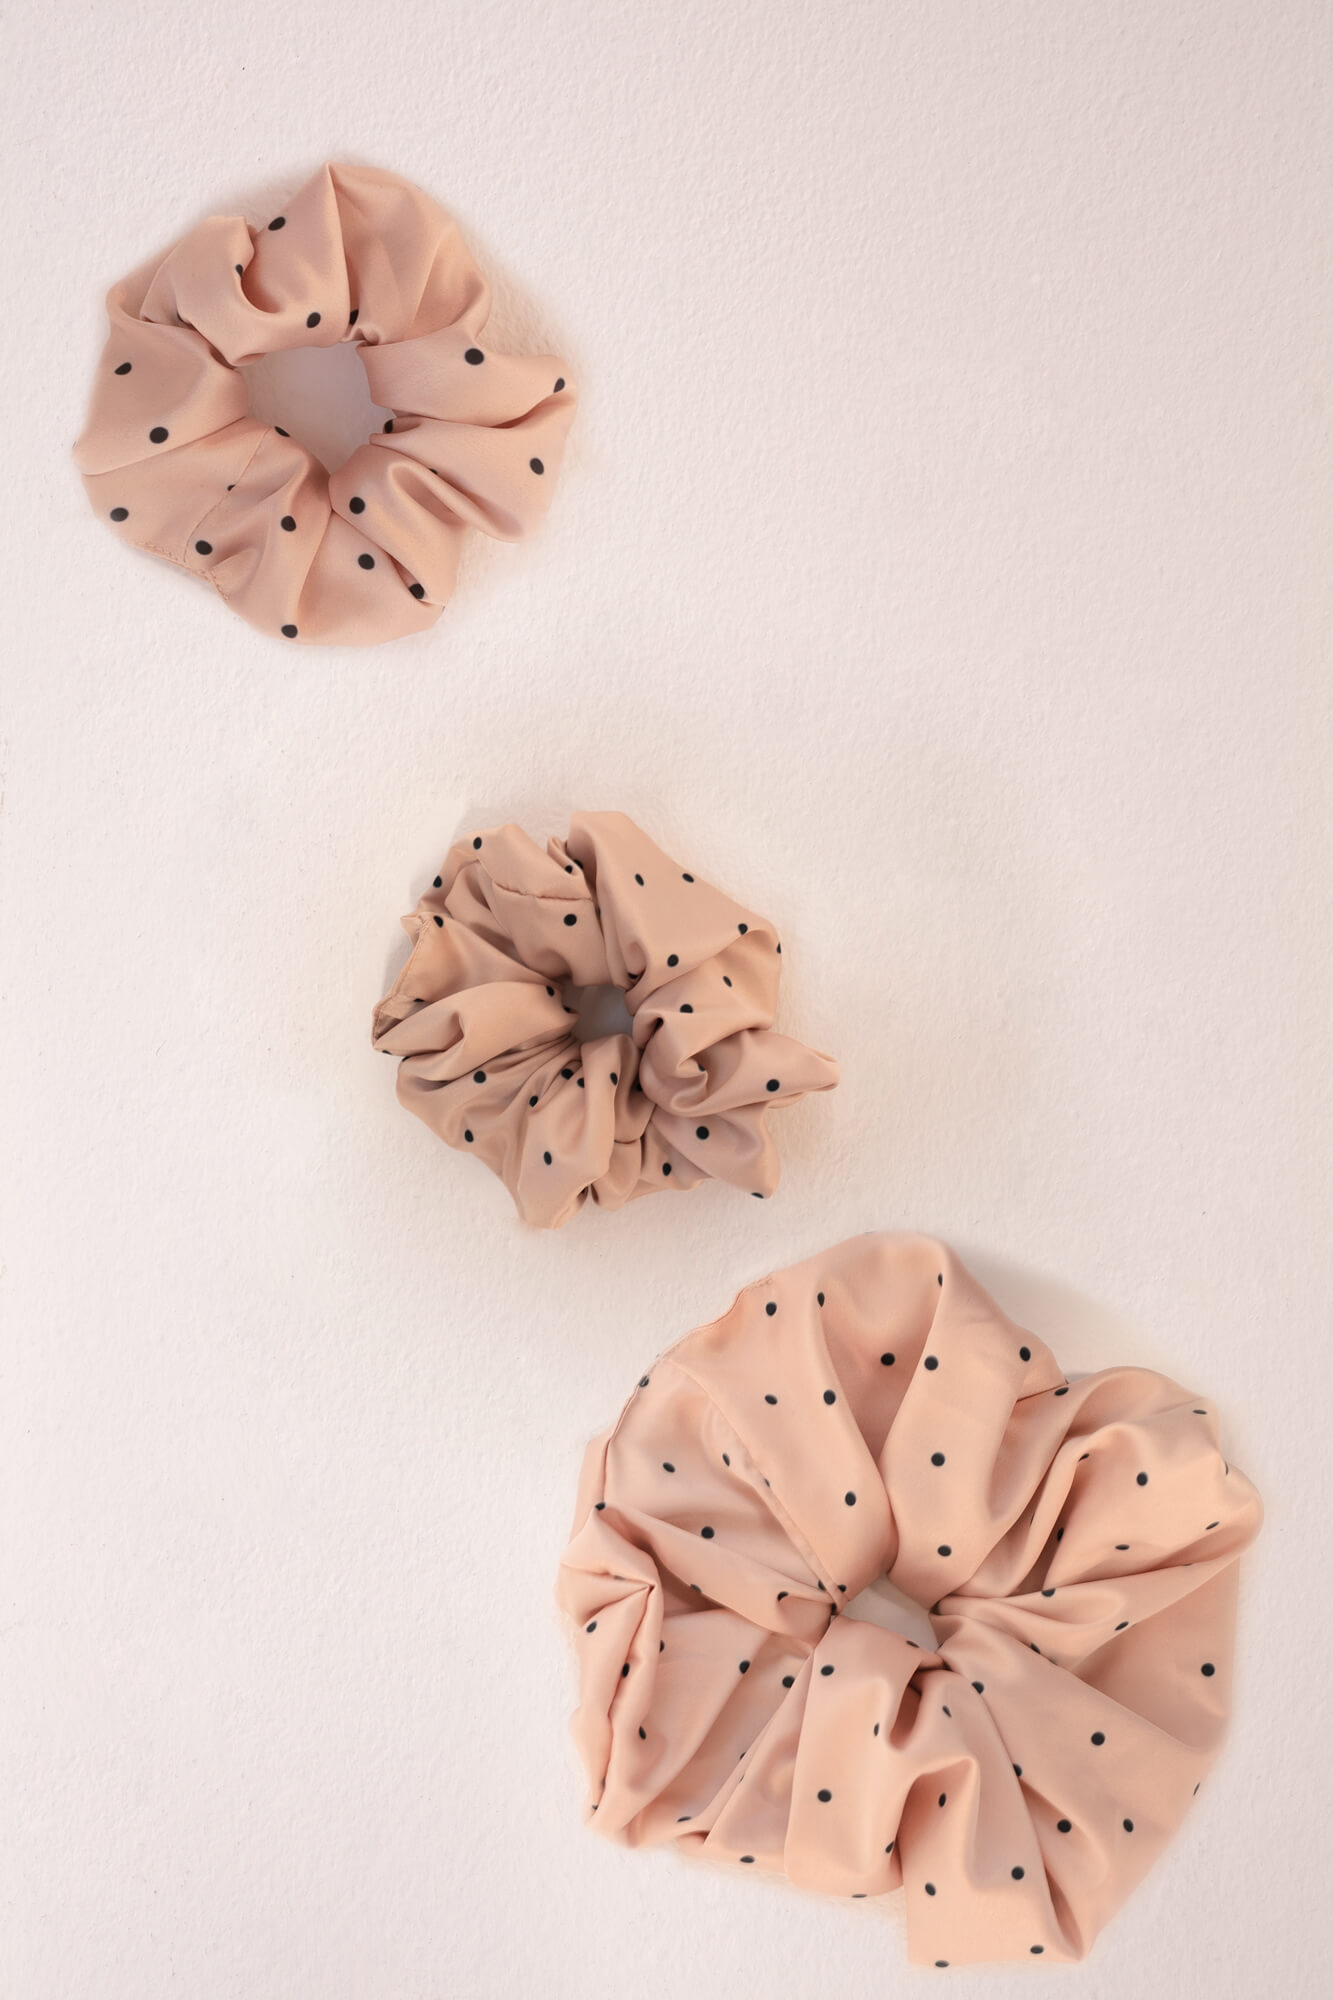 Silk Scrunchie Oh Girl image featured